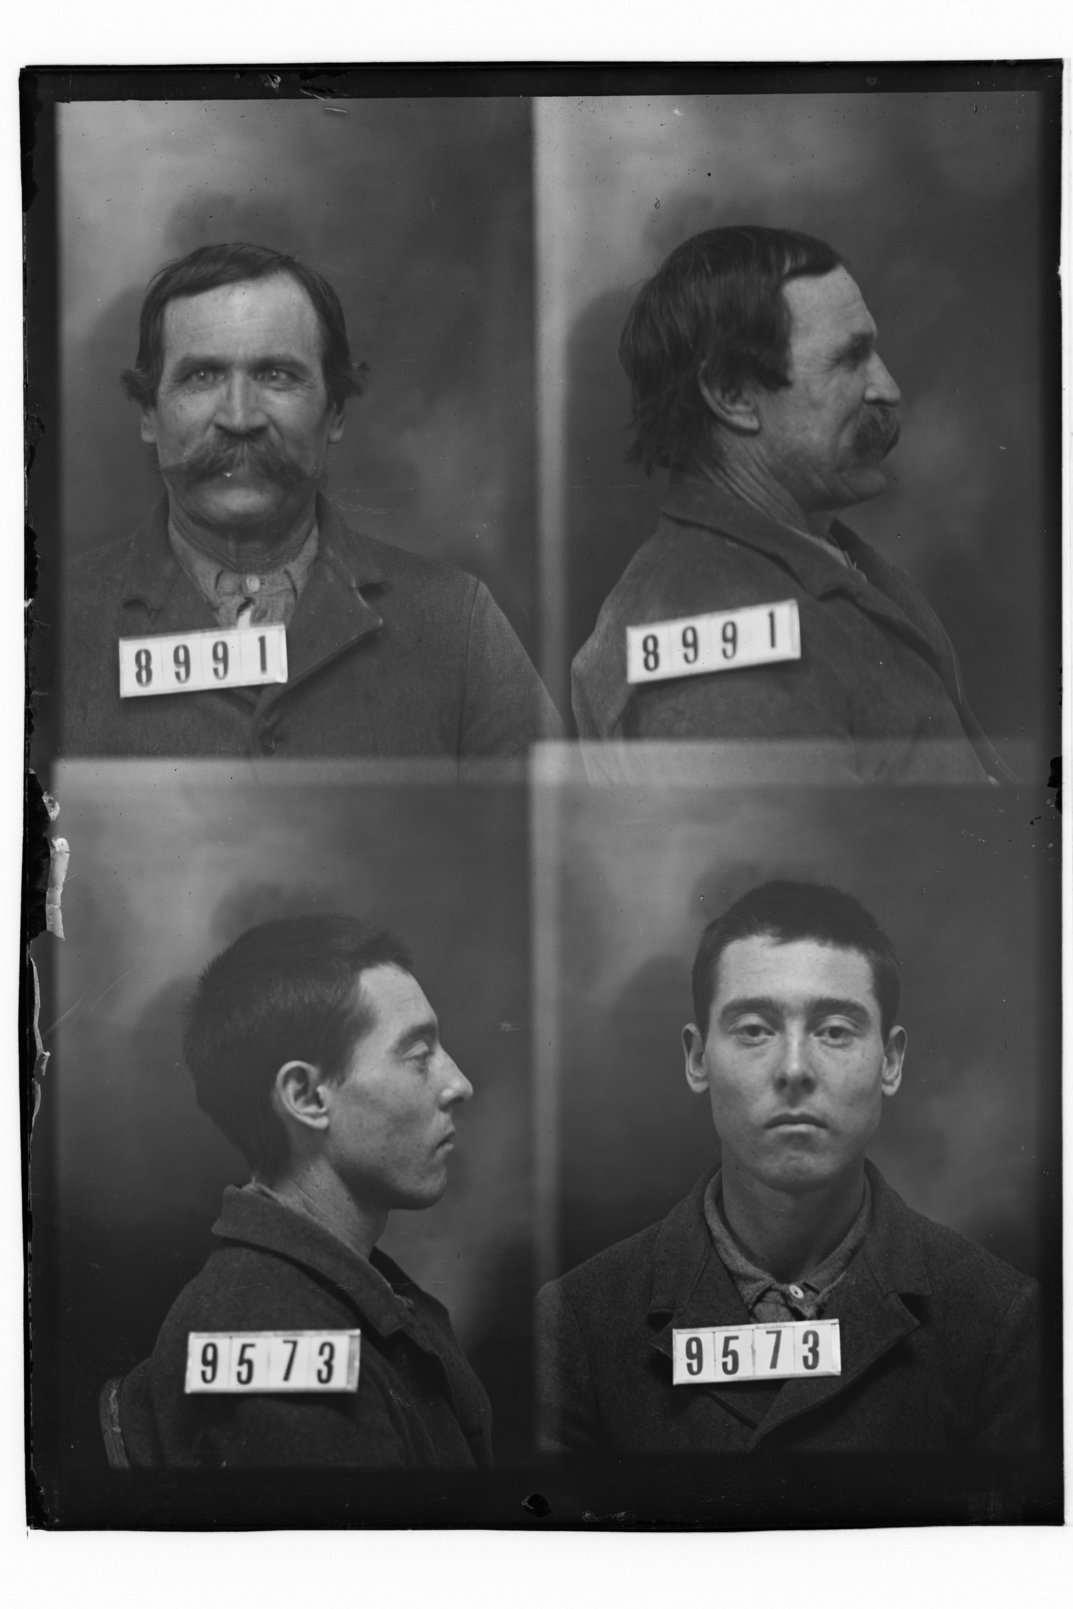 Cecil Moreland and Thomas Green, prisoners 9573 and 8991